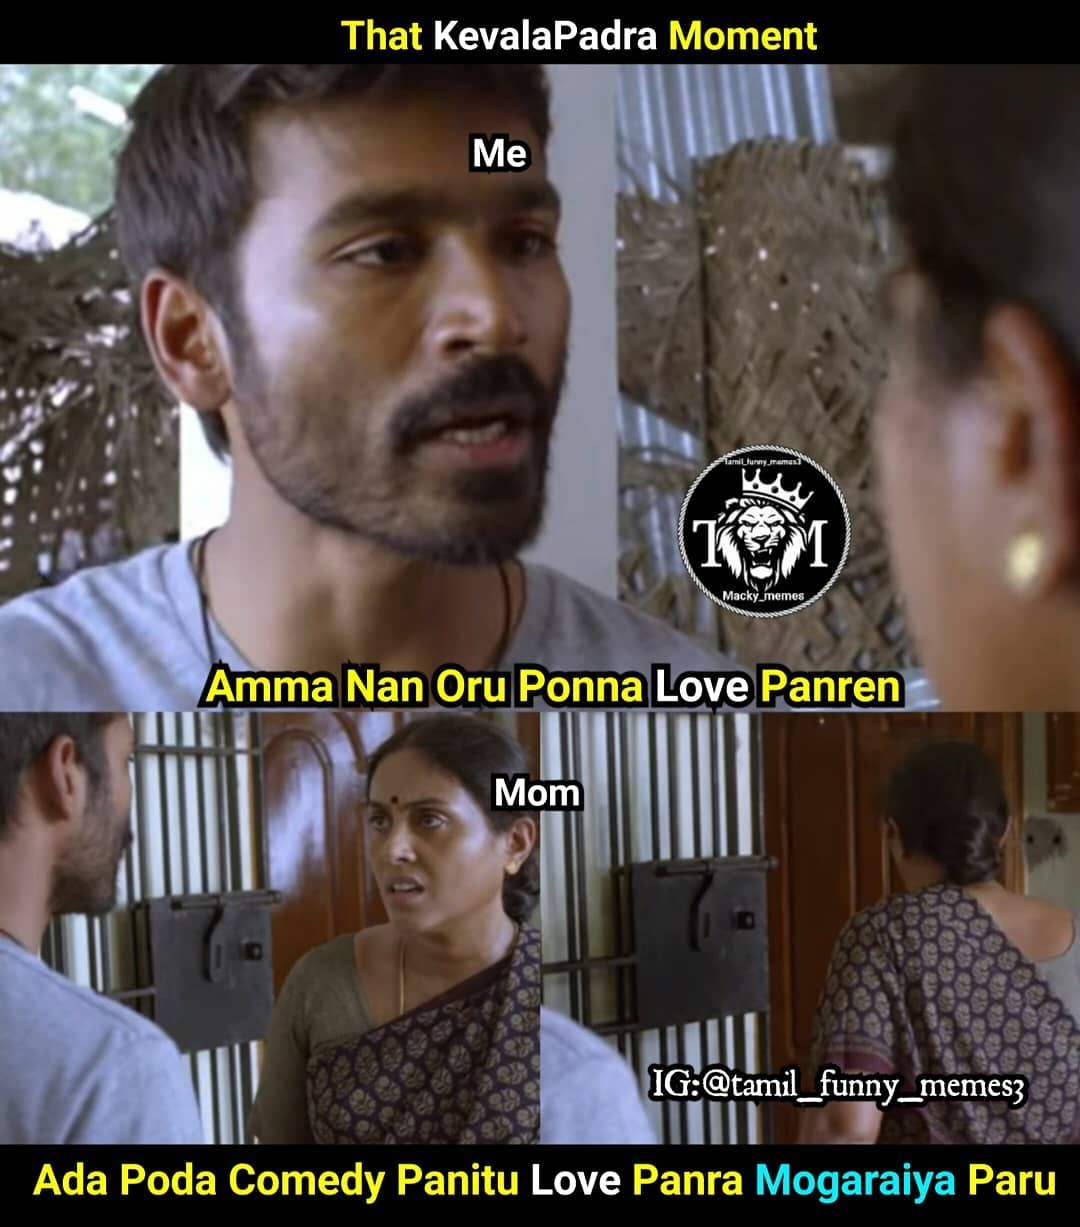 Now Tamil Funny Memes For Instagram Facebook Whatsapp Tarding Tamil Memes 2020 Tamil Funny Memes Very Funny Jokes Comedy Memes